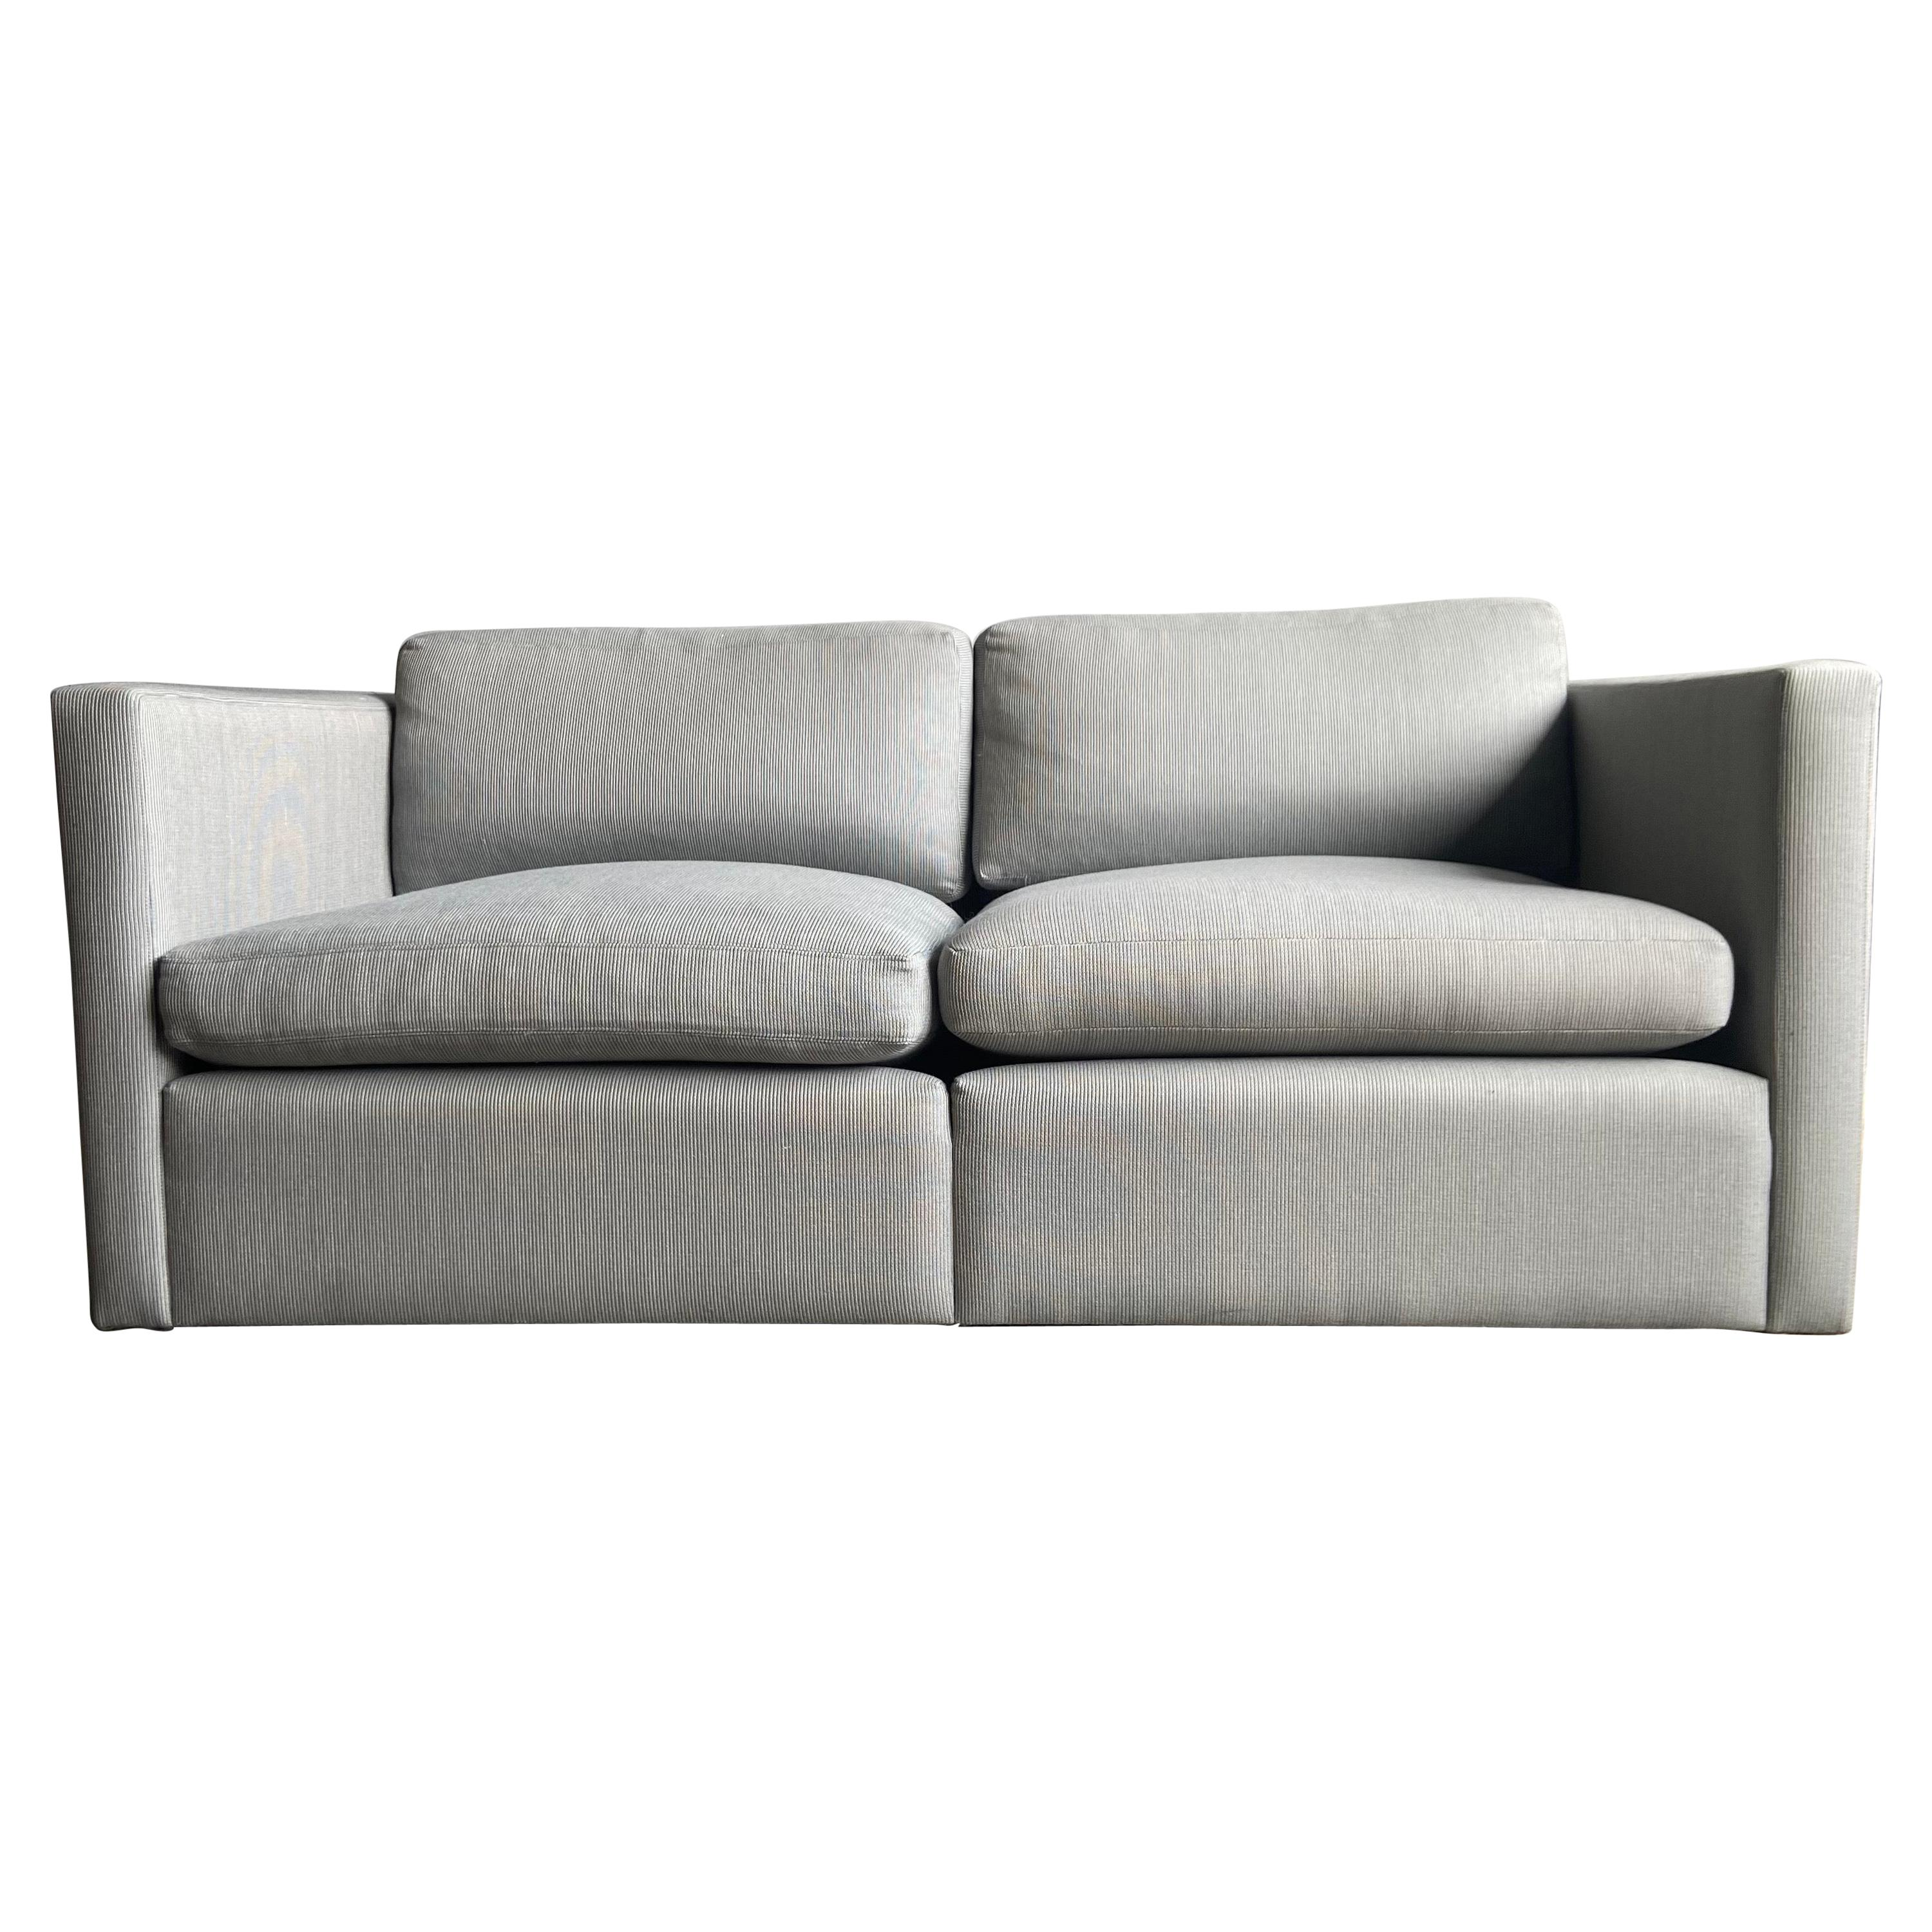 Midcentury Two Seat Sofa for Knoll